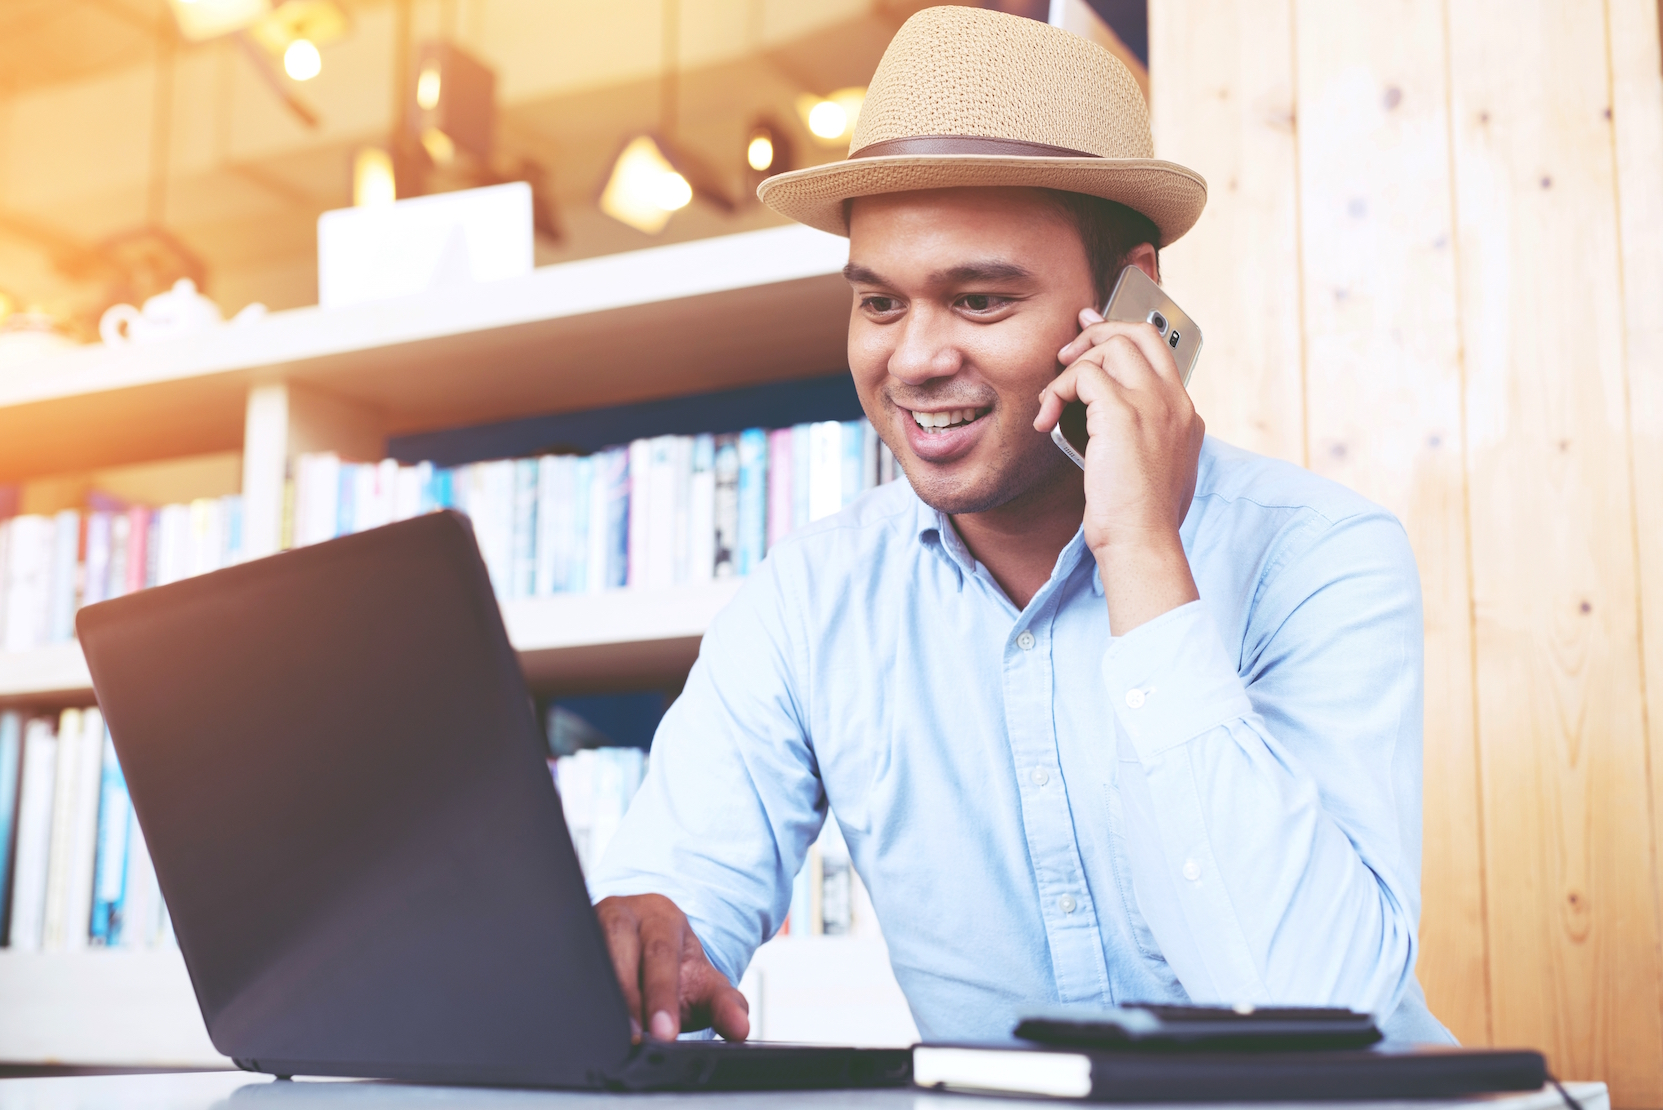 Maintain quality and control of your customer service program with the right contact center partner.